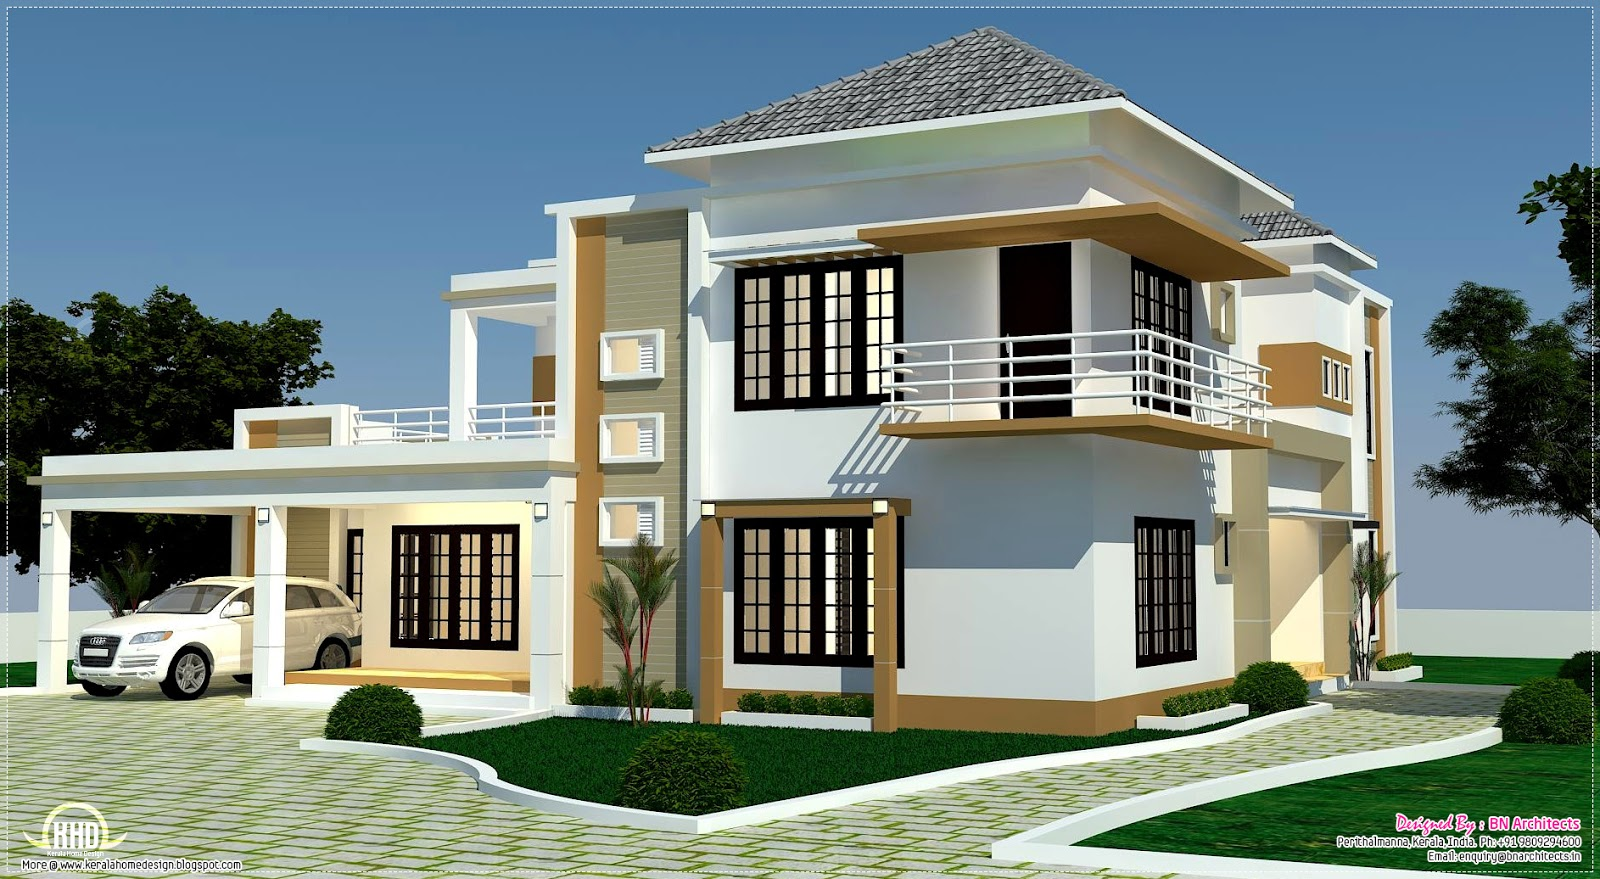 Floor plan 3d views and interiors of 4 bedroom villa for House design plan 3d